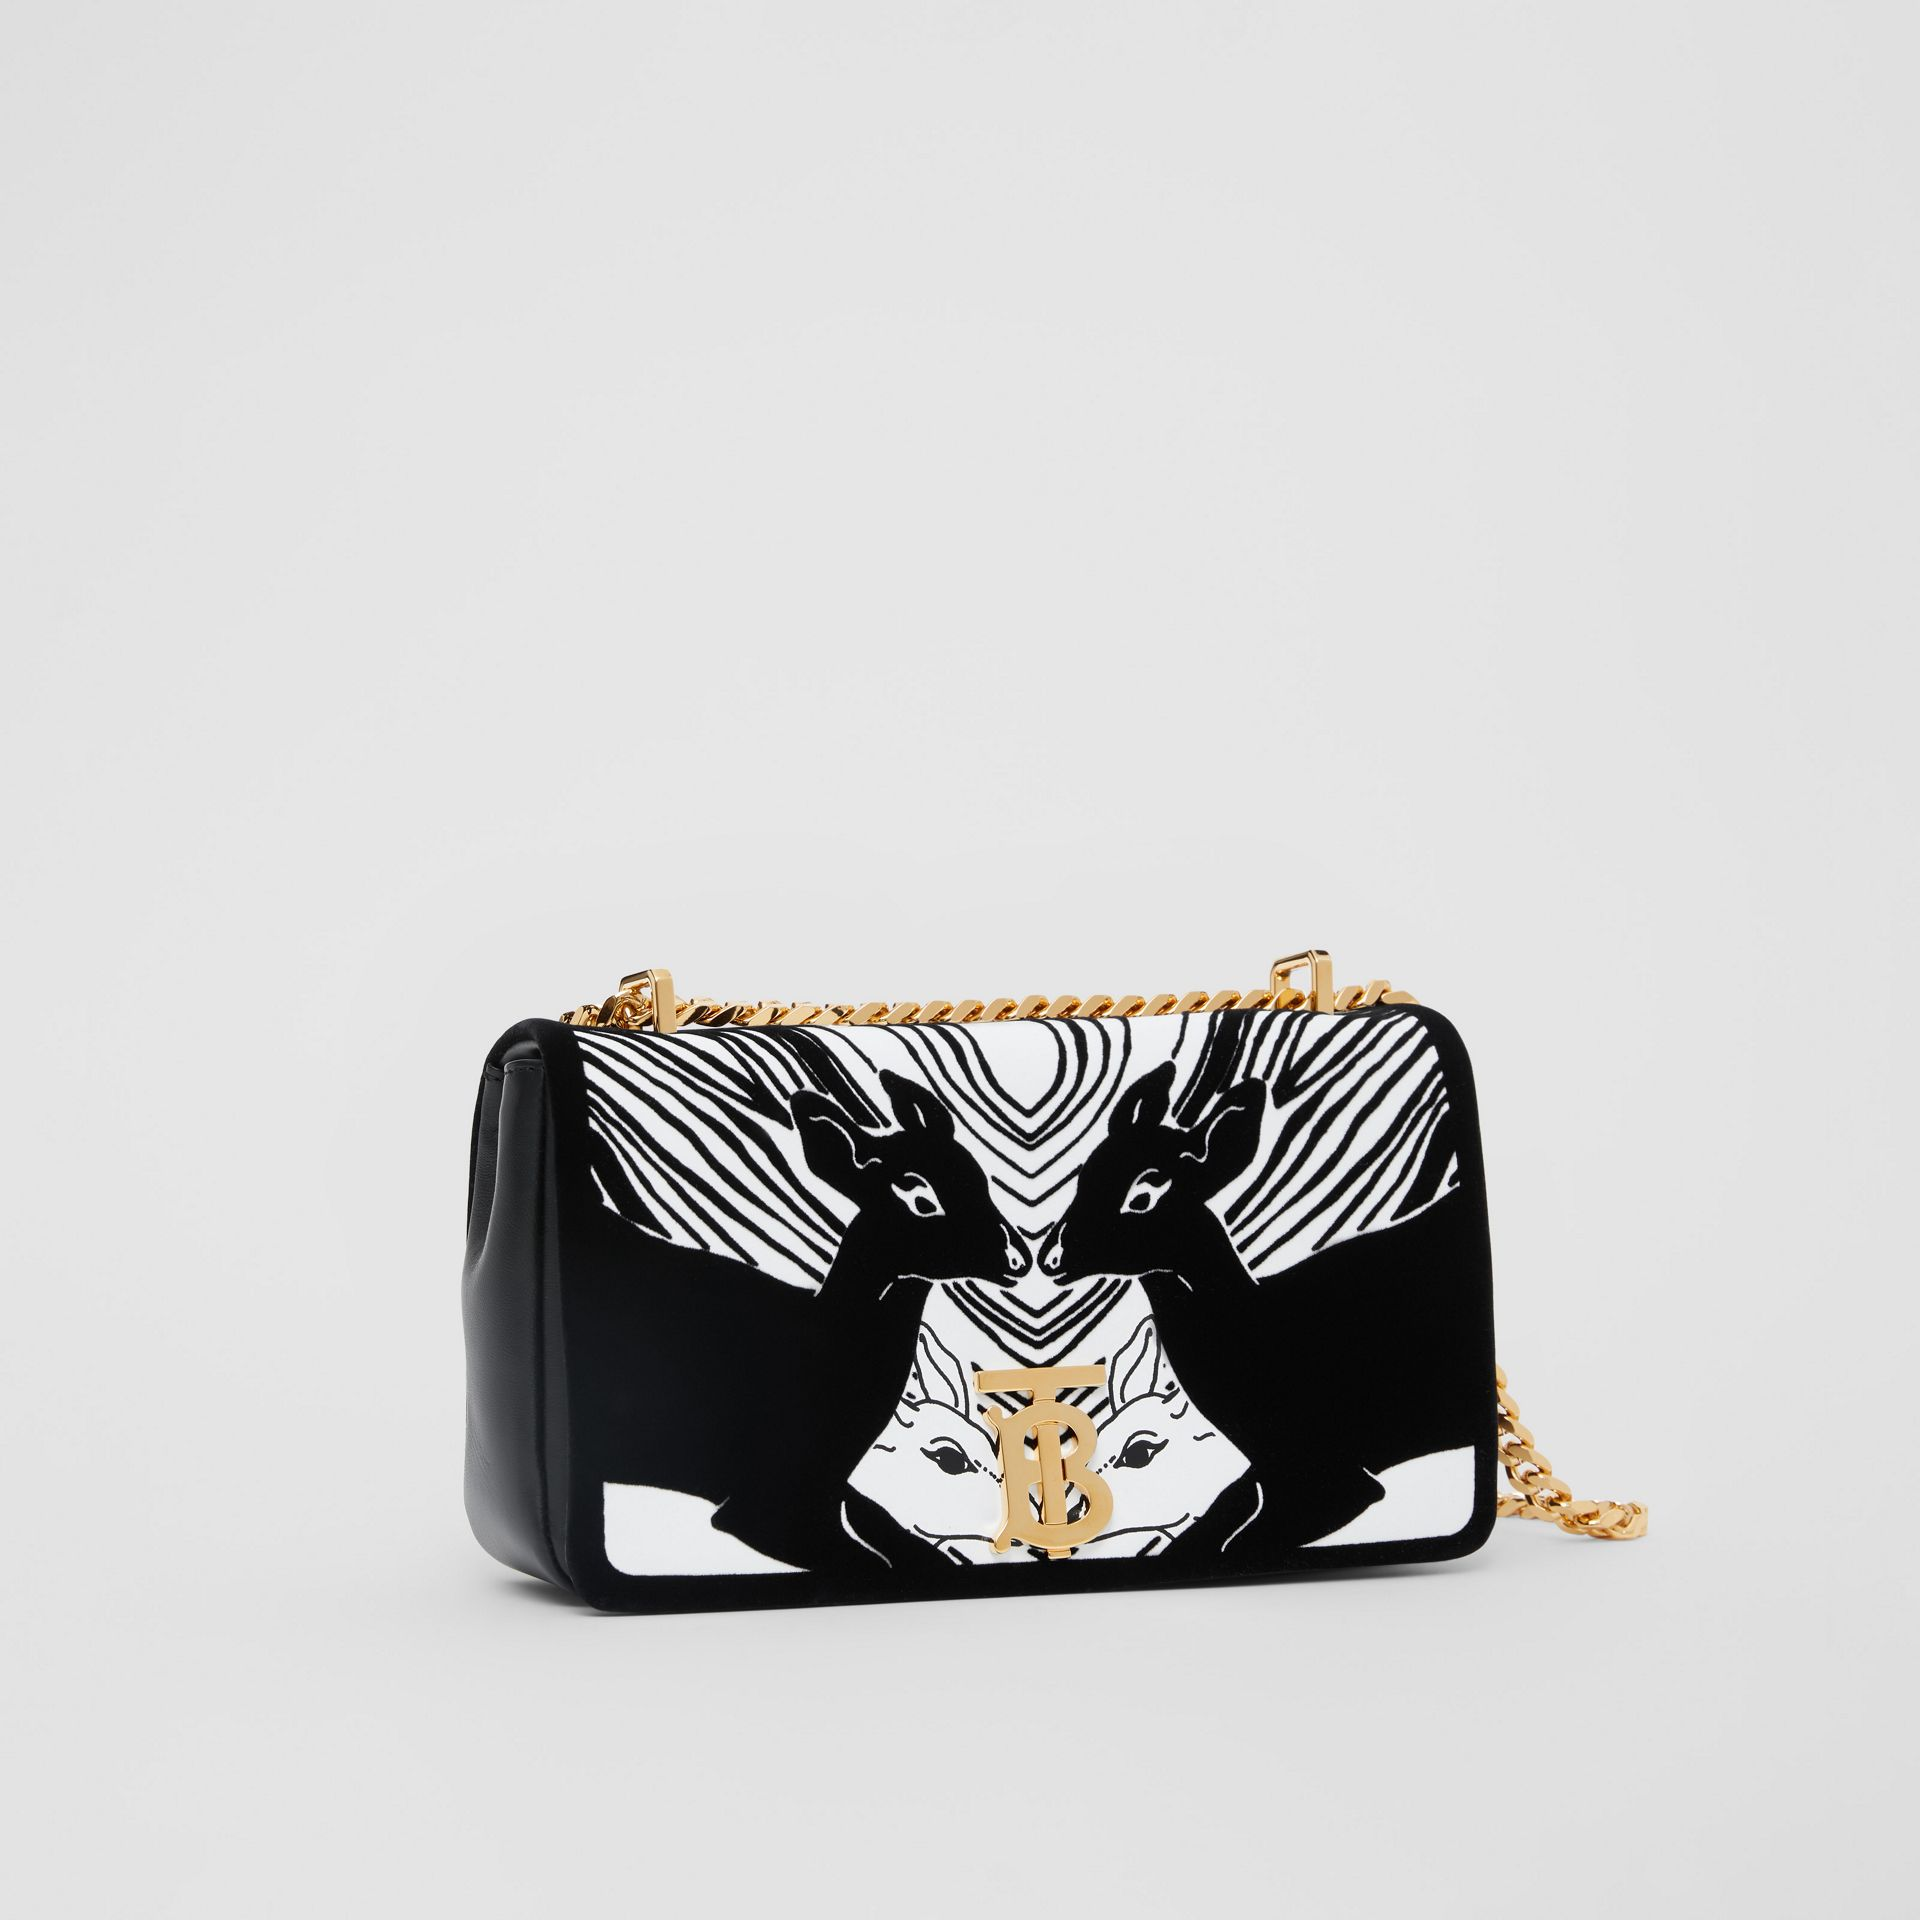 Small Deer Flock Leather Lola Bag in Black/white - Women | Burberry Hong Kong S.A.R. - gallery image 6